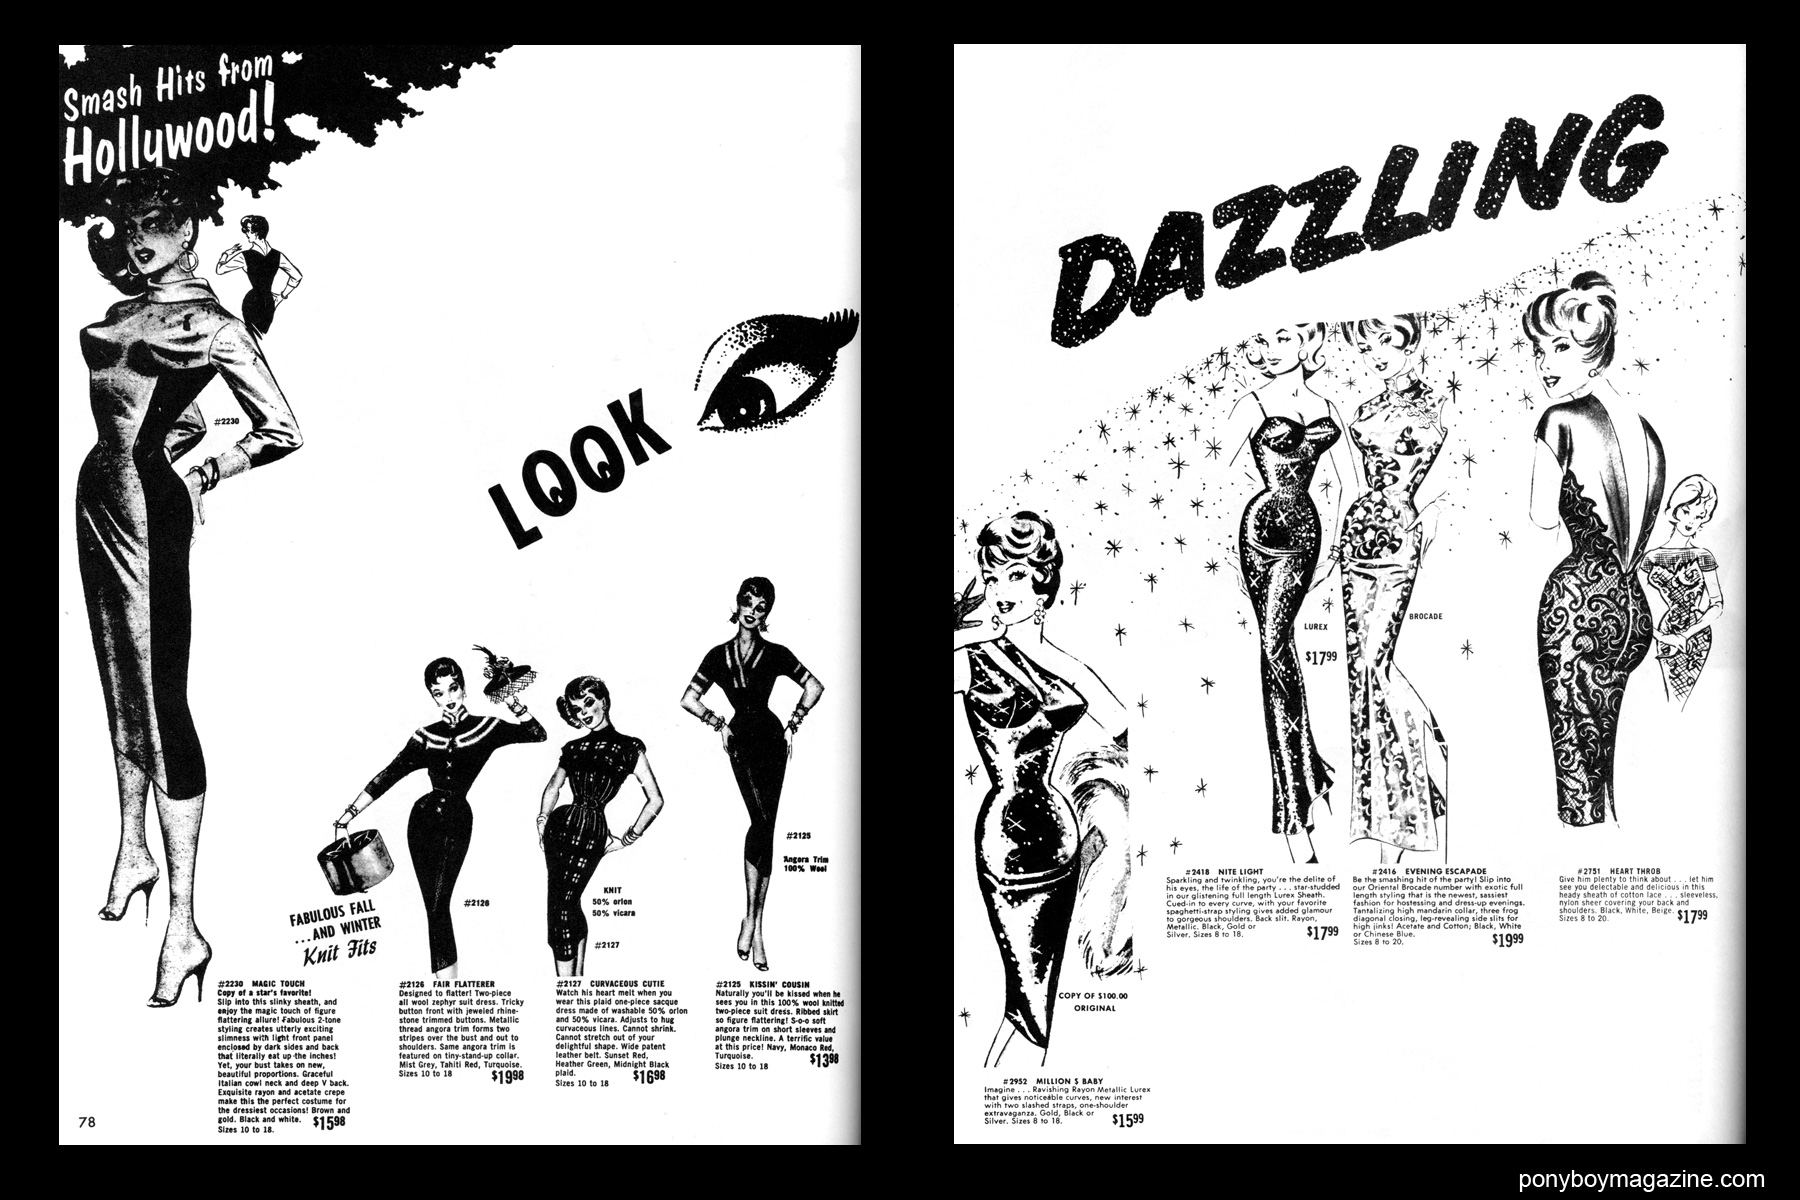 Sexy vintage 50's cocktail dresses, FREDERICK'S OF HOLLYWOOD: 26 Years of Mail Order Seduction. Printed in 1973 by Drake Publishers. Edited by Laura & Janusz Gottwald, Ponyboy Magazine.